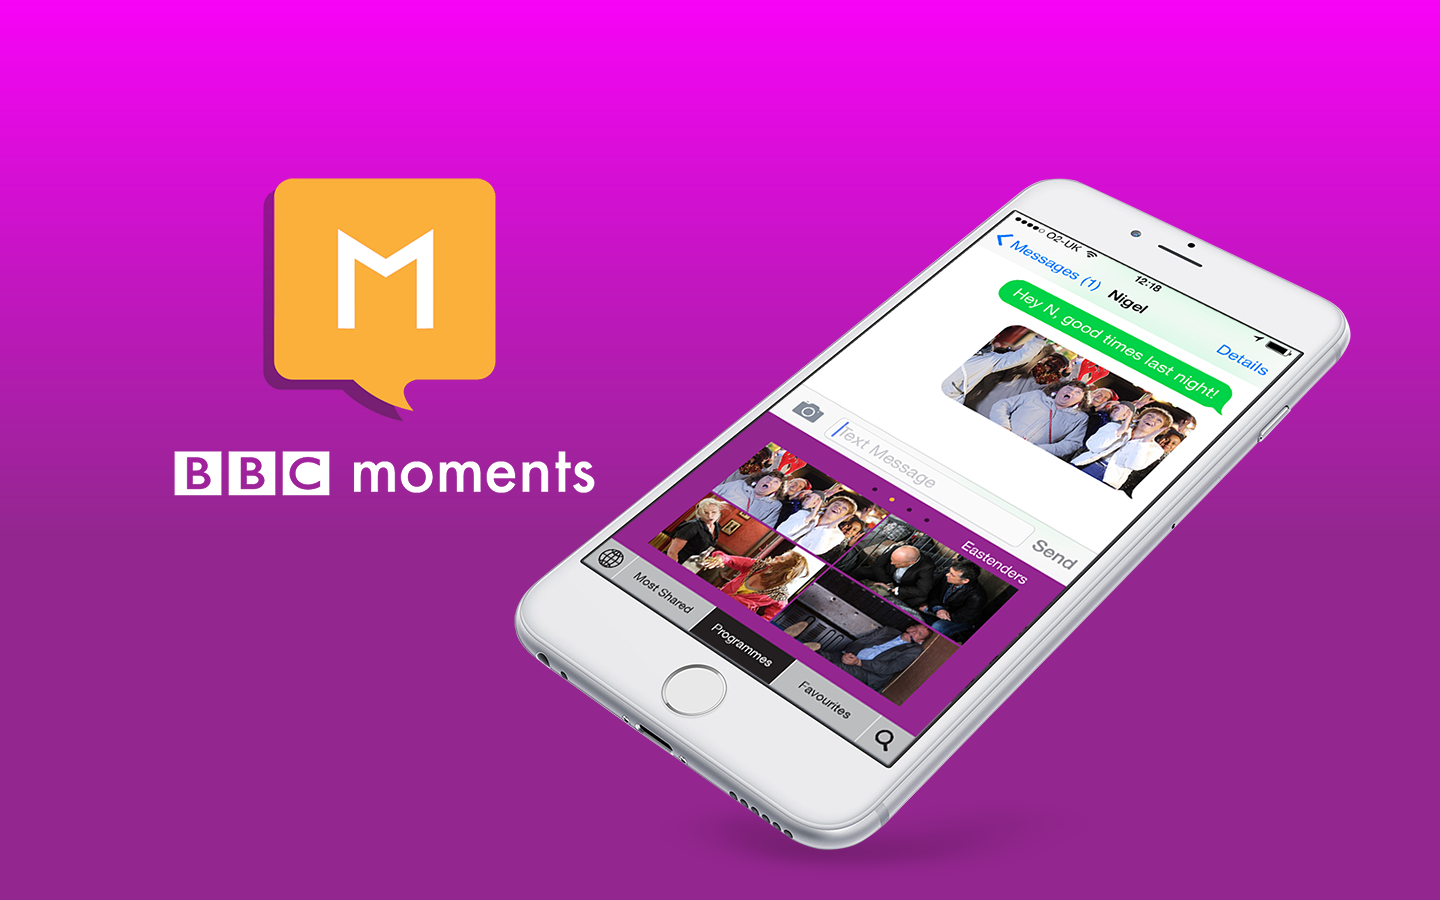 Cover image: BBC Moments